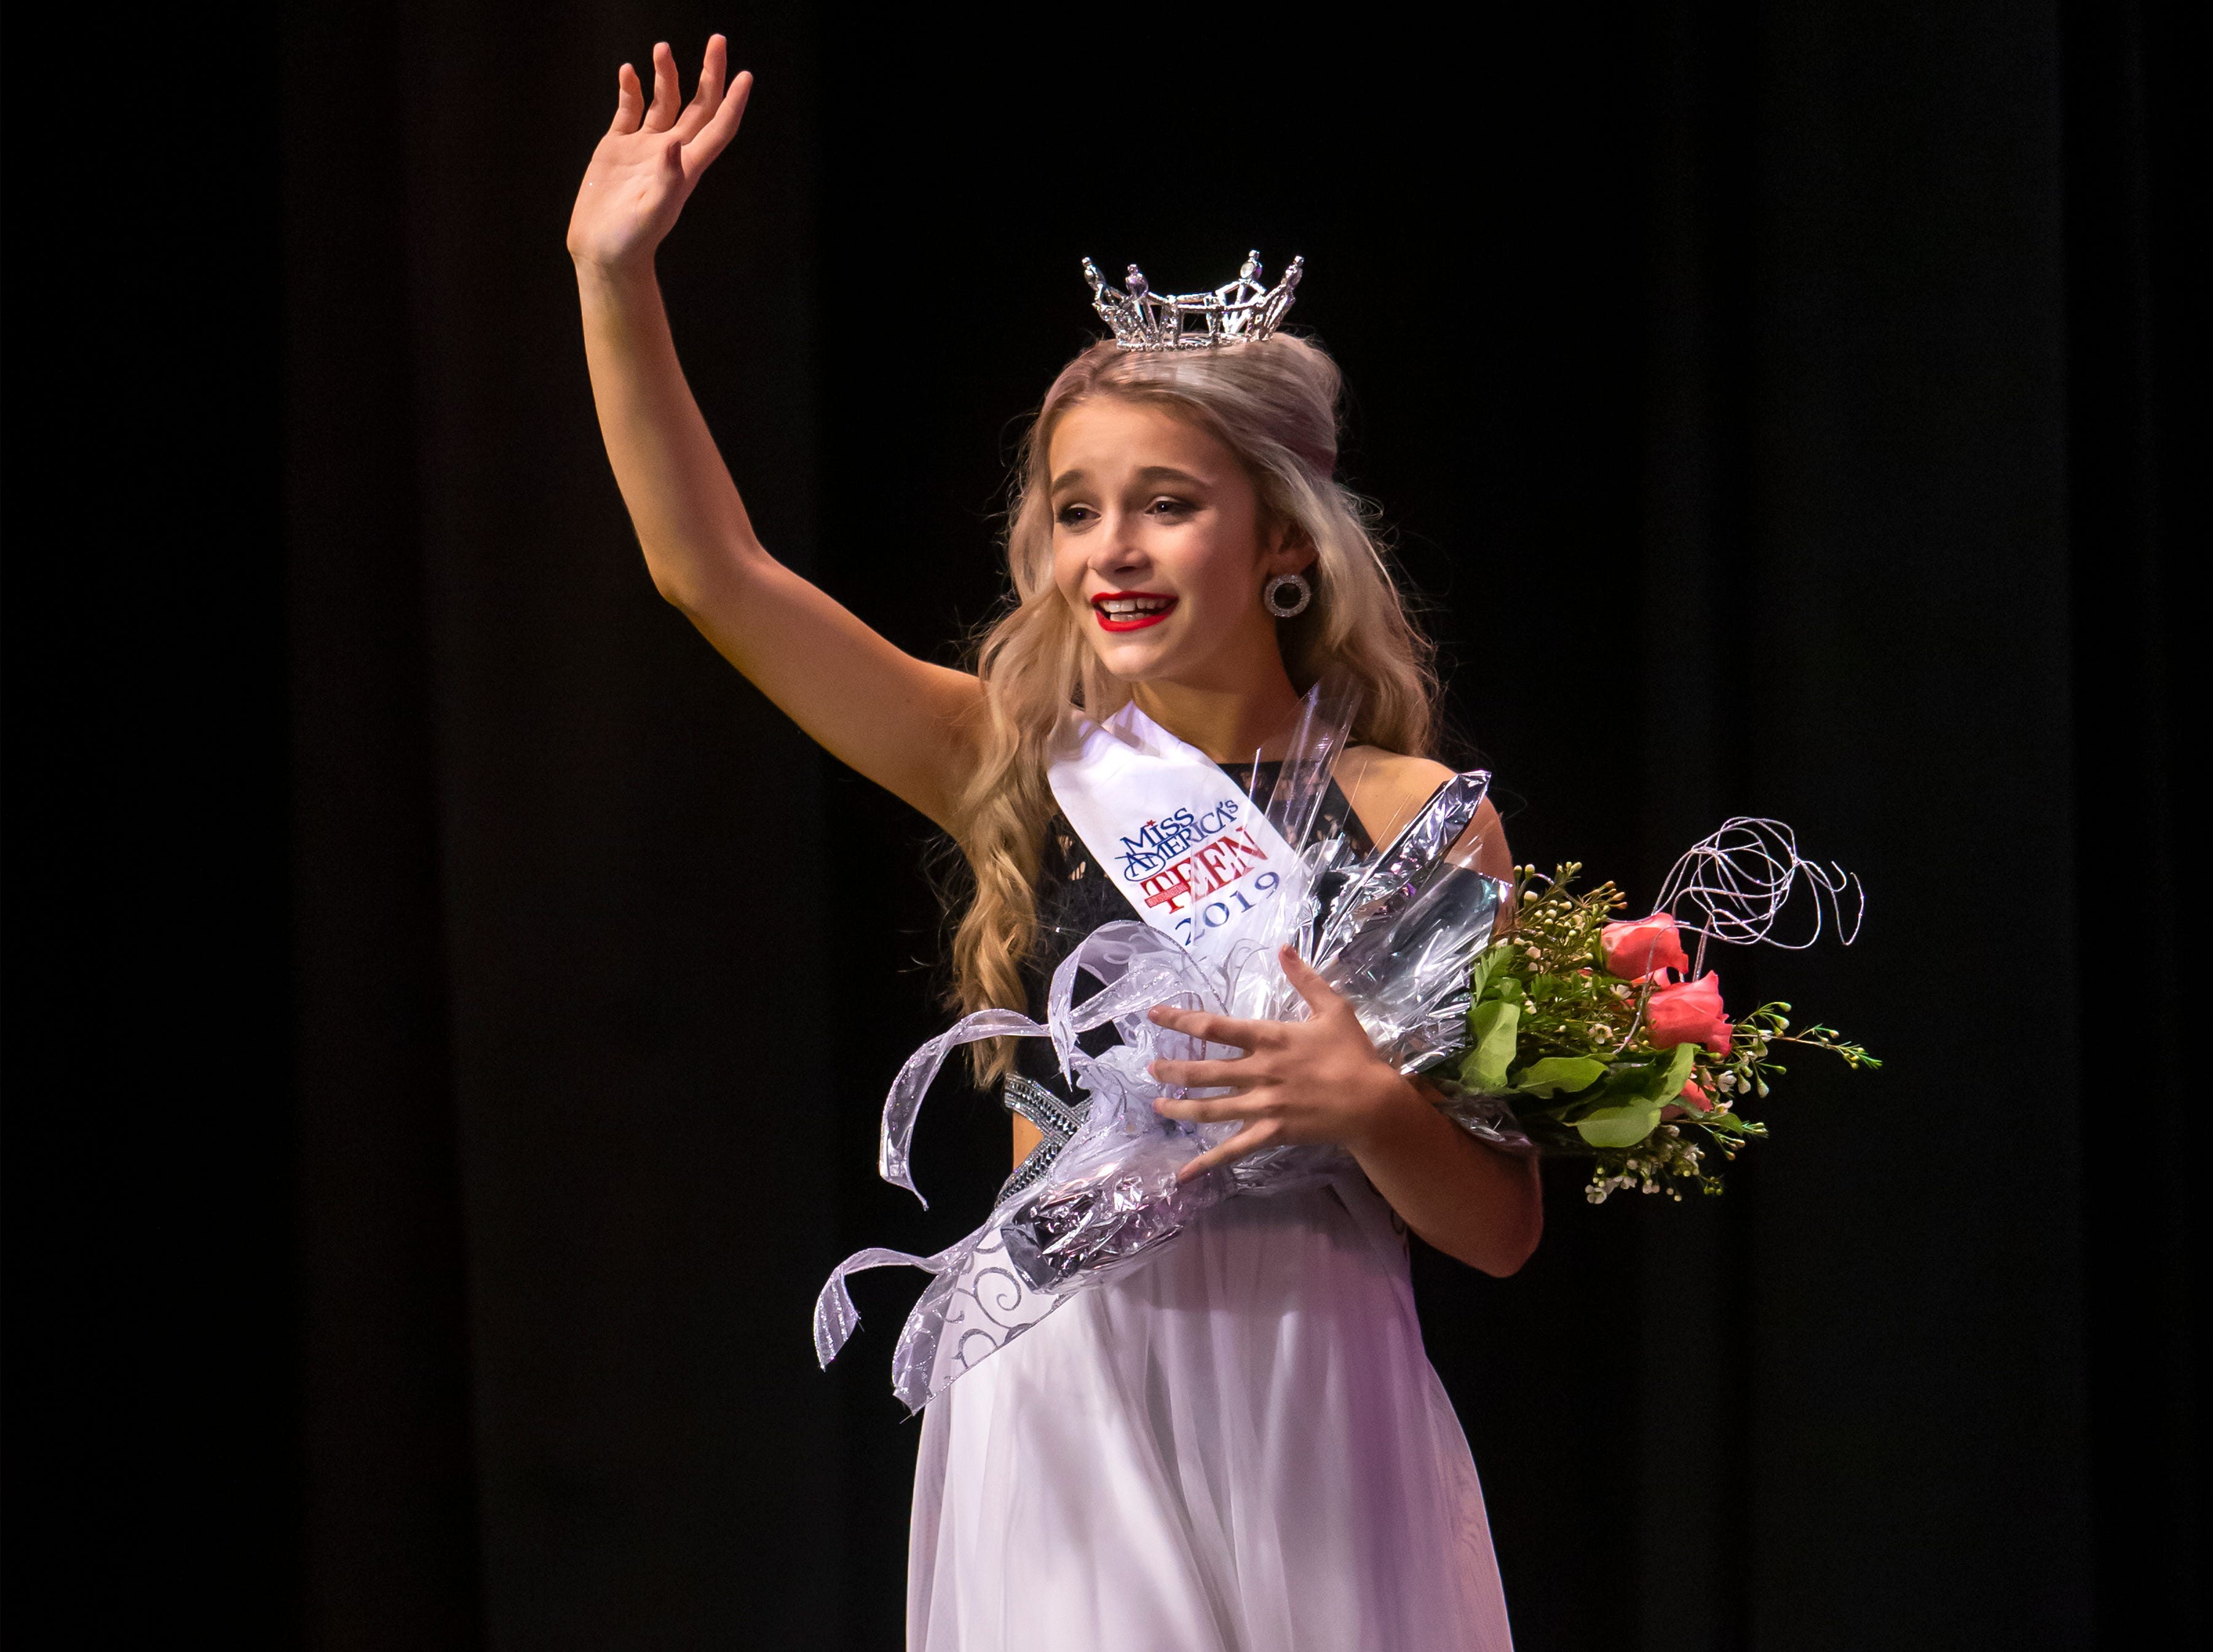 Samantha Tuchscherer wins the Miss Oshkosh's Outstanding Teen title during the Miss Oshkosh Scholarship Pageant Saturday, March 2, 2019, at Alberta Kimball Auditorium in Oshkosh, Wis.